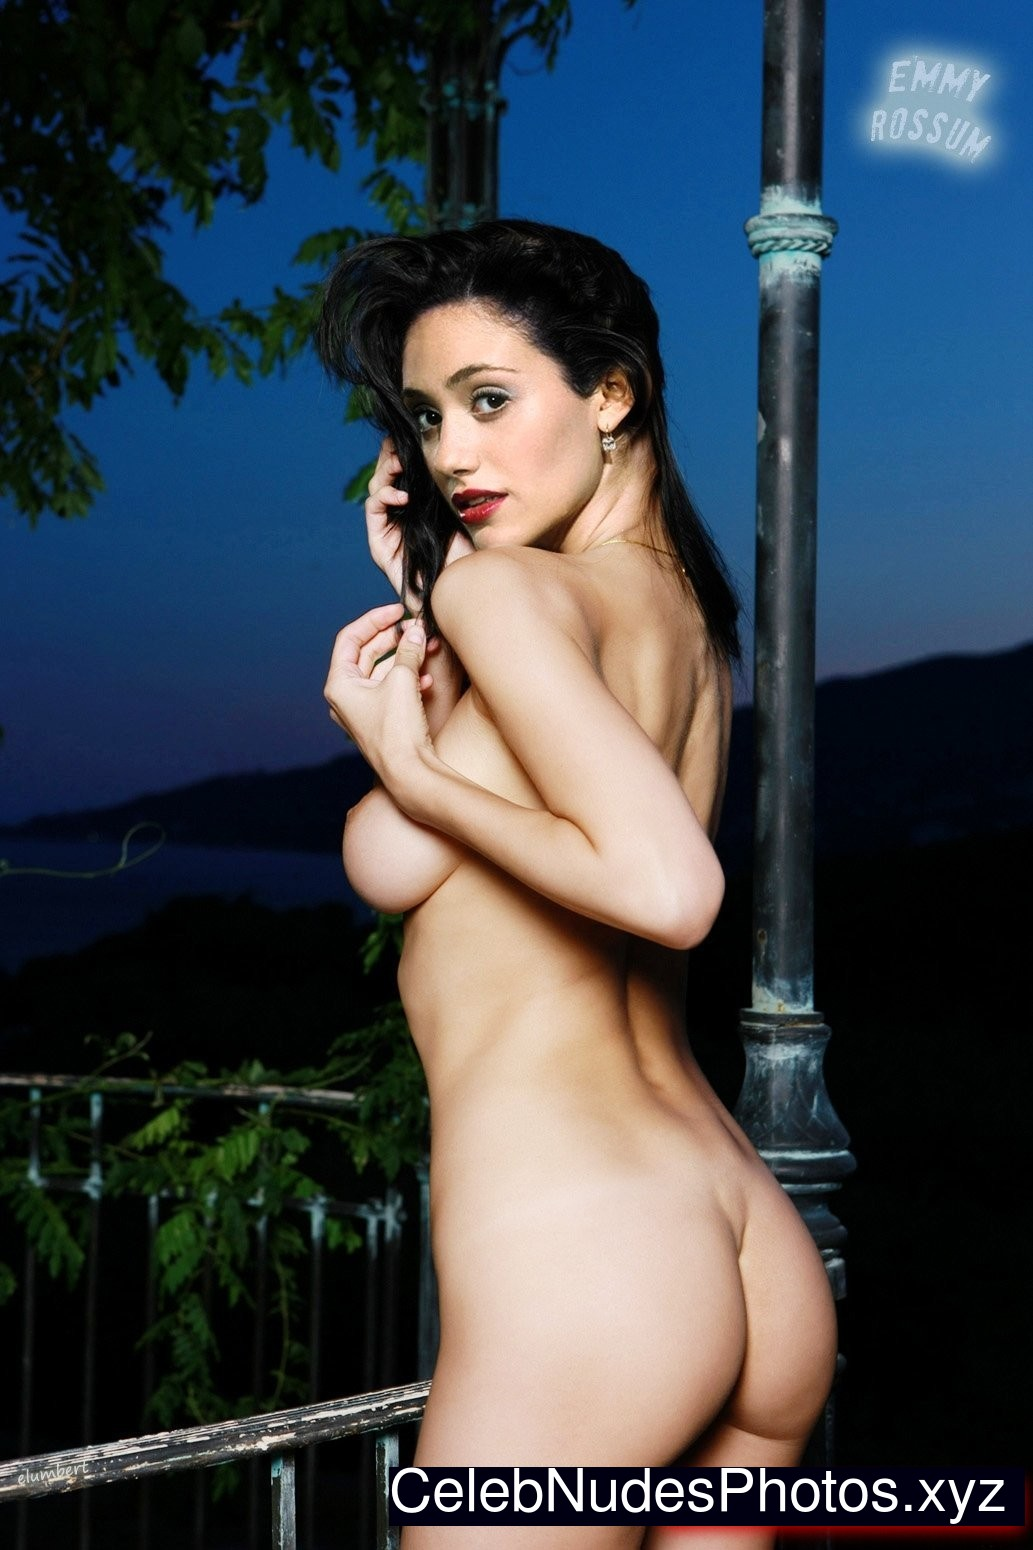 Emmy Rossum Celebrities Naked sexy 6